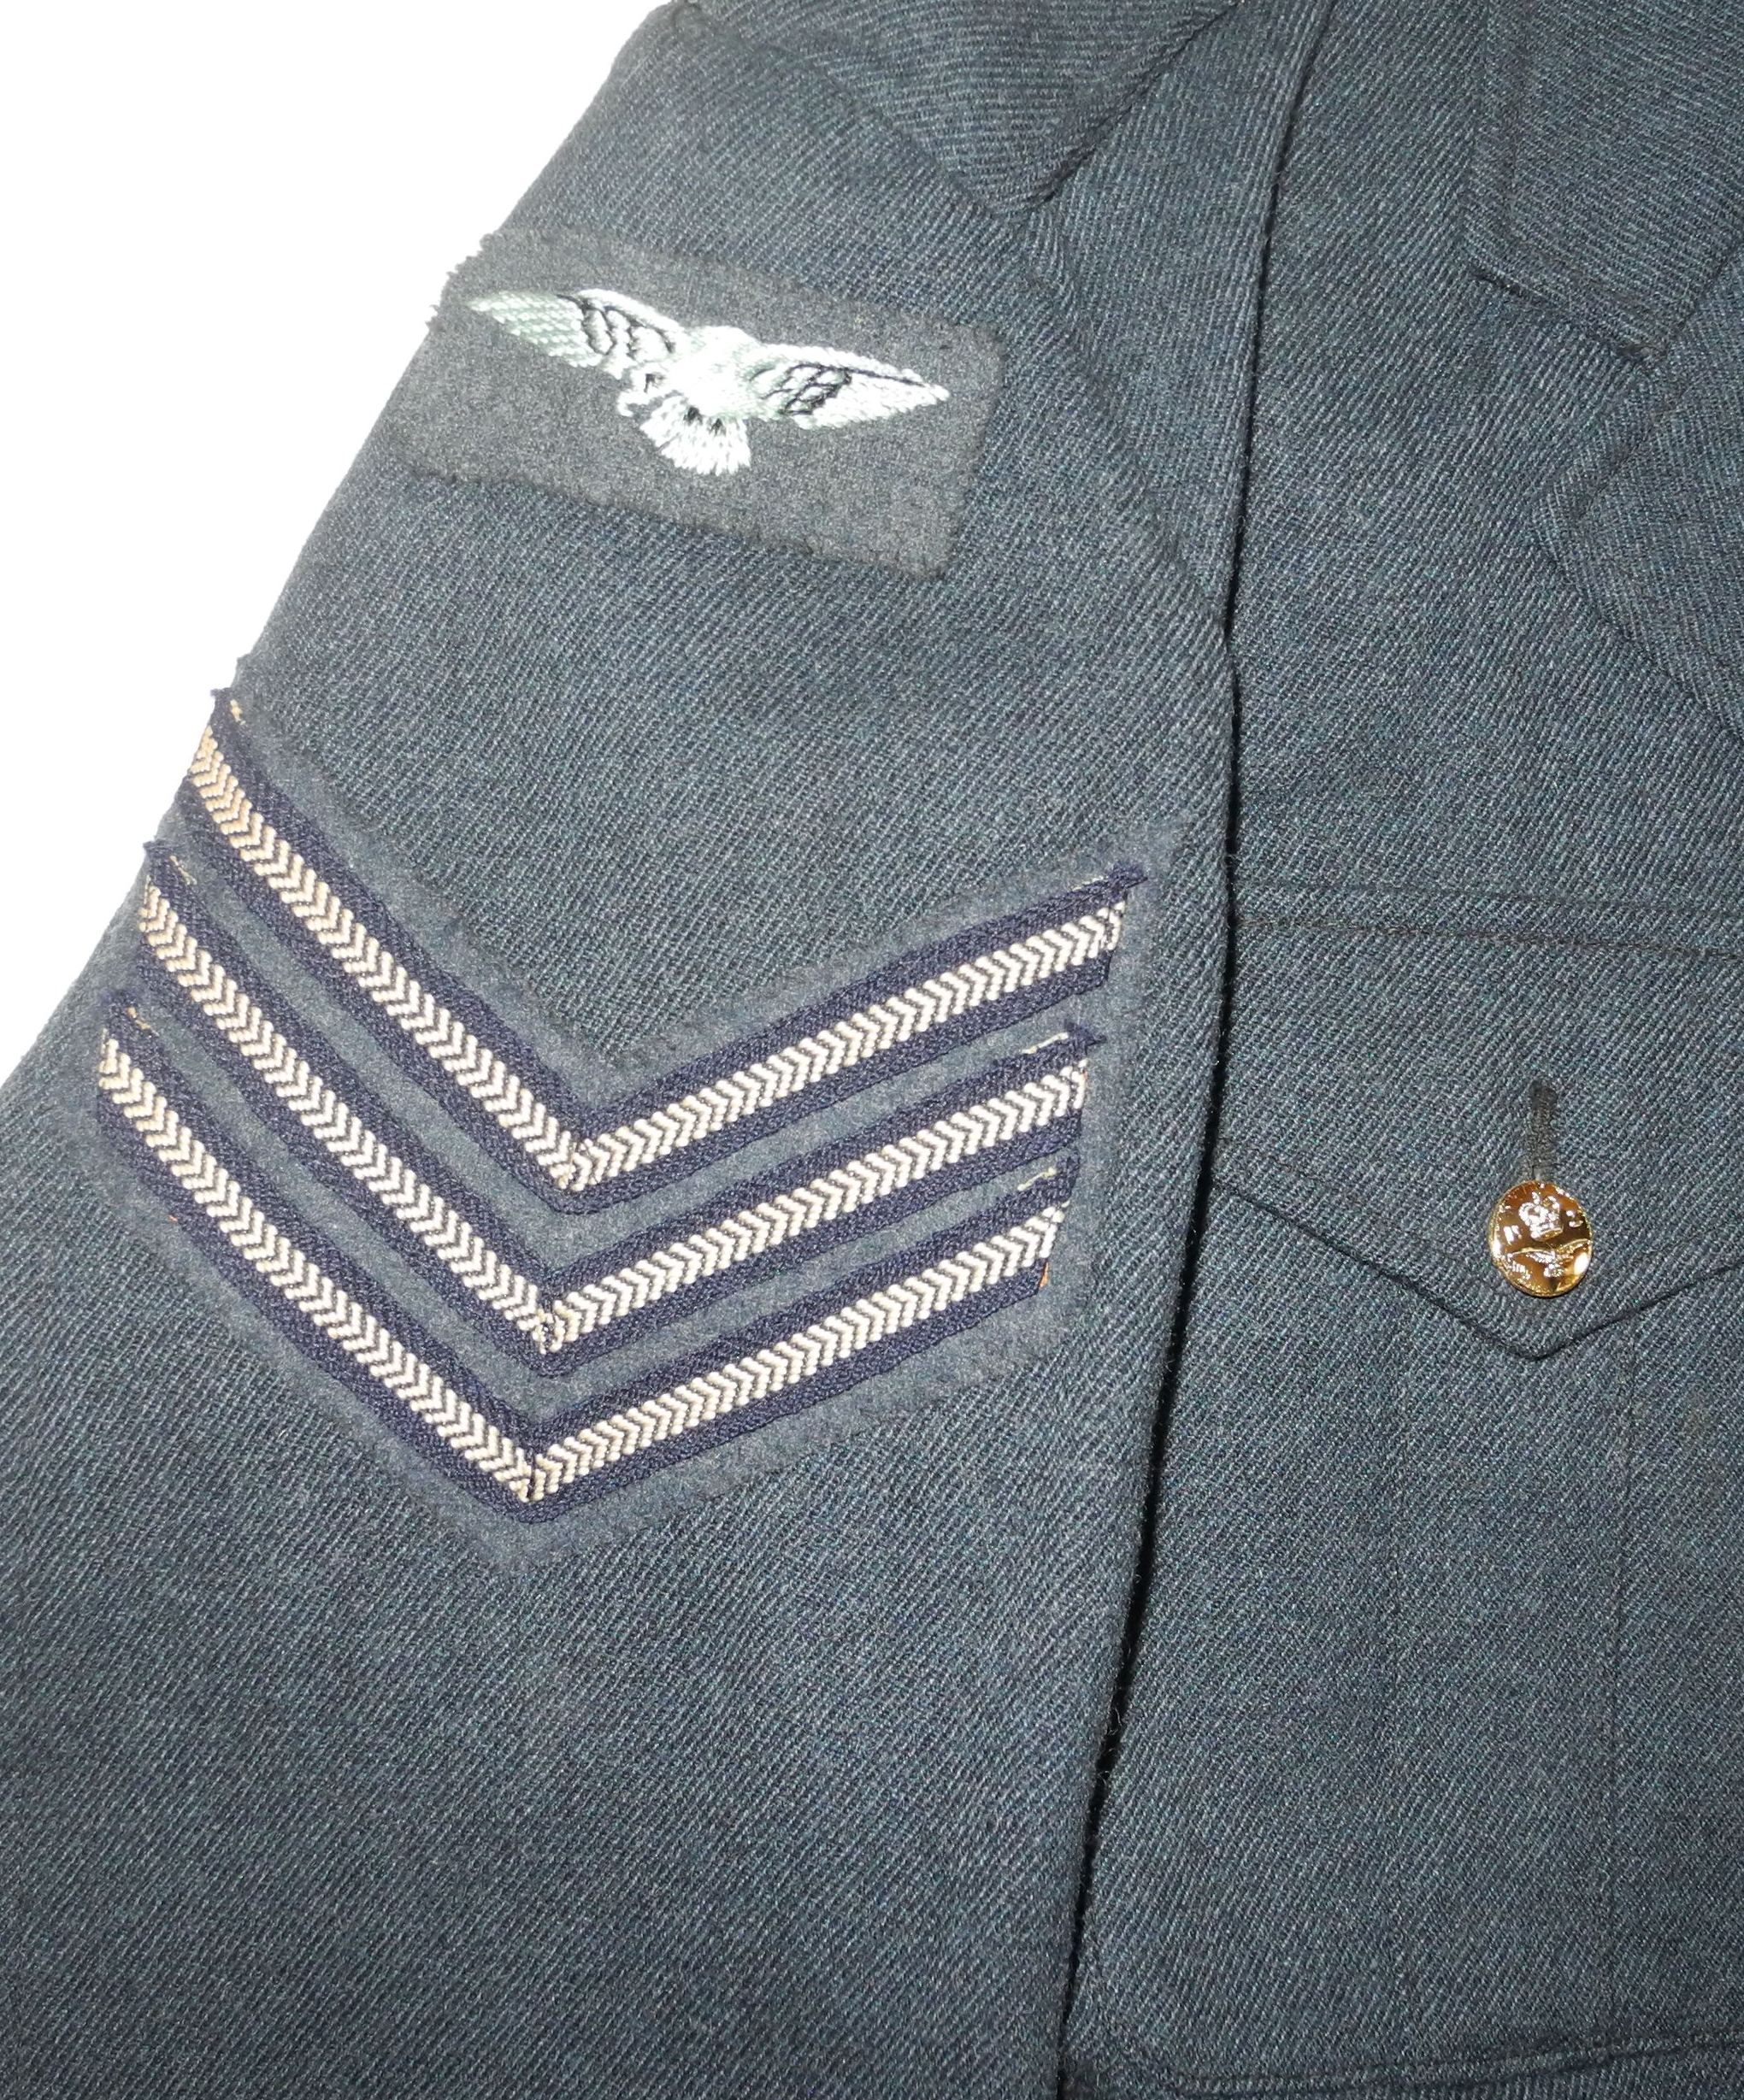 RNZAF battledress blouse dated 1964